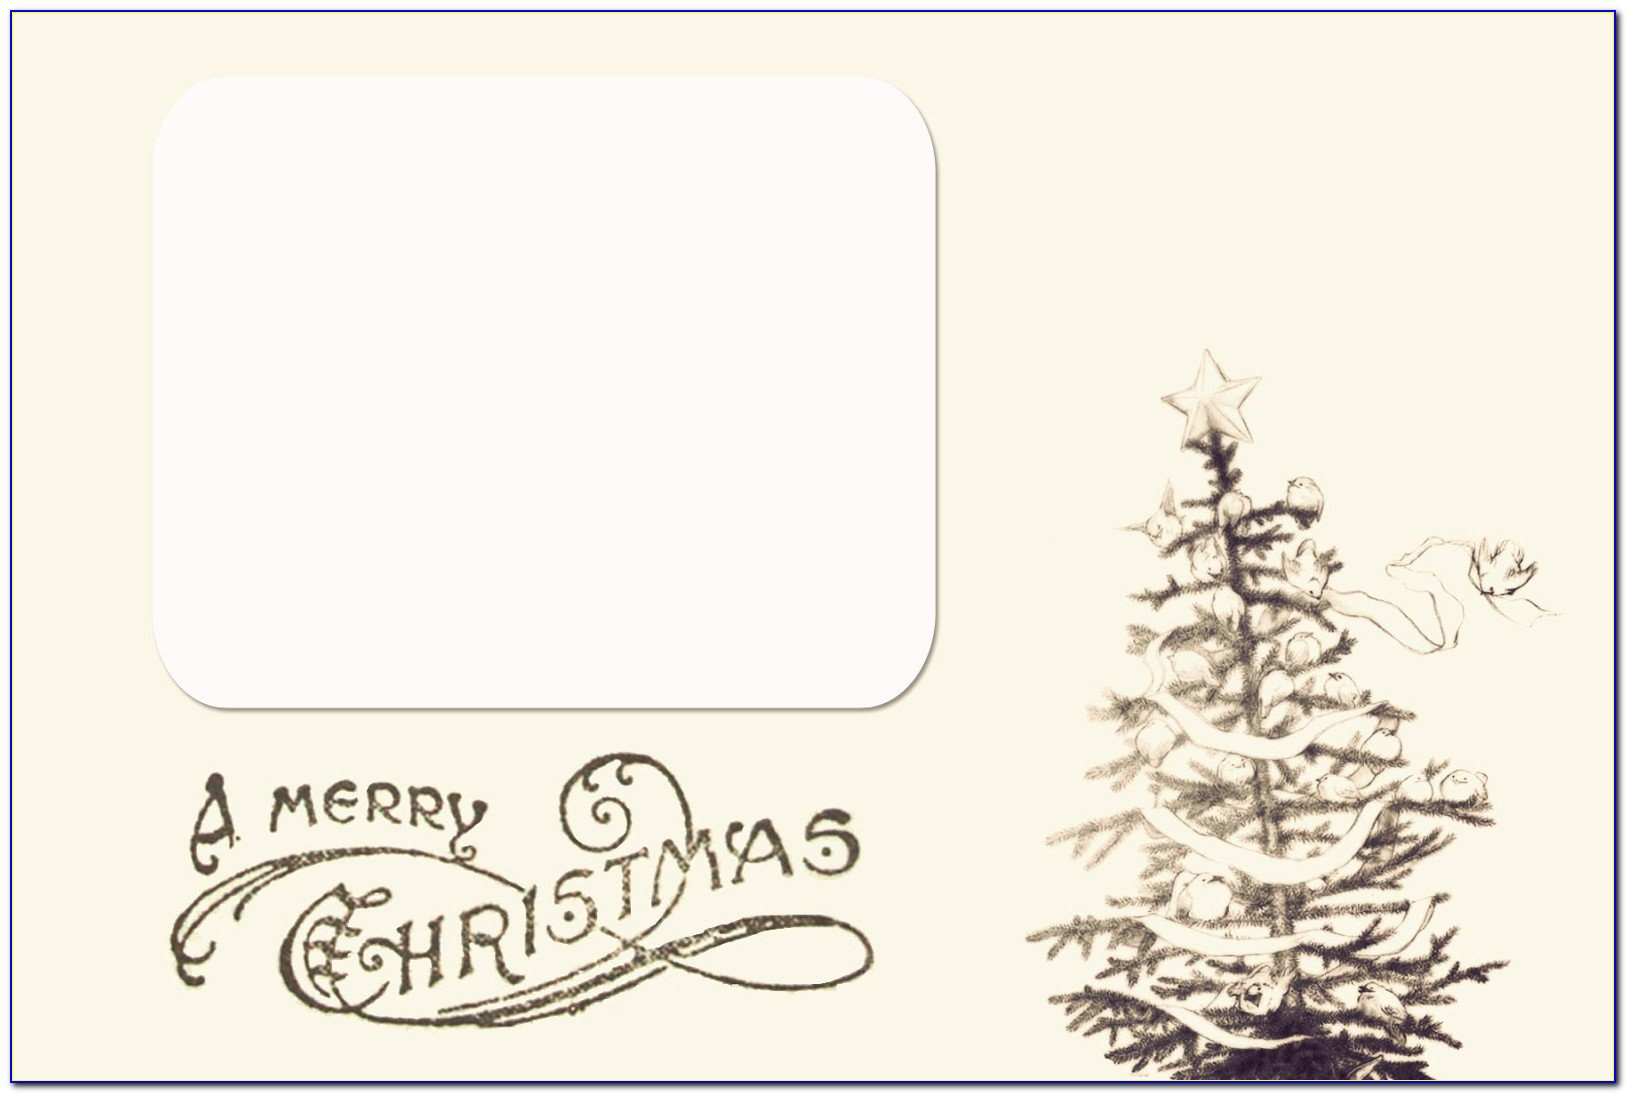 Free Photo Christmas Card Templates For Photoshop